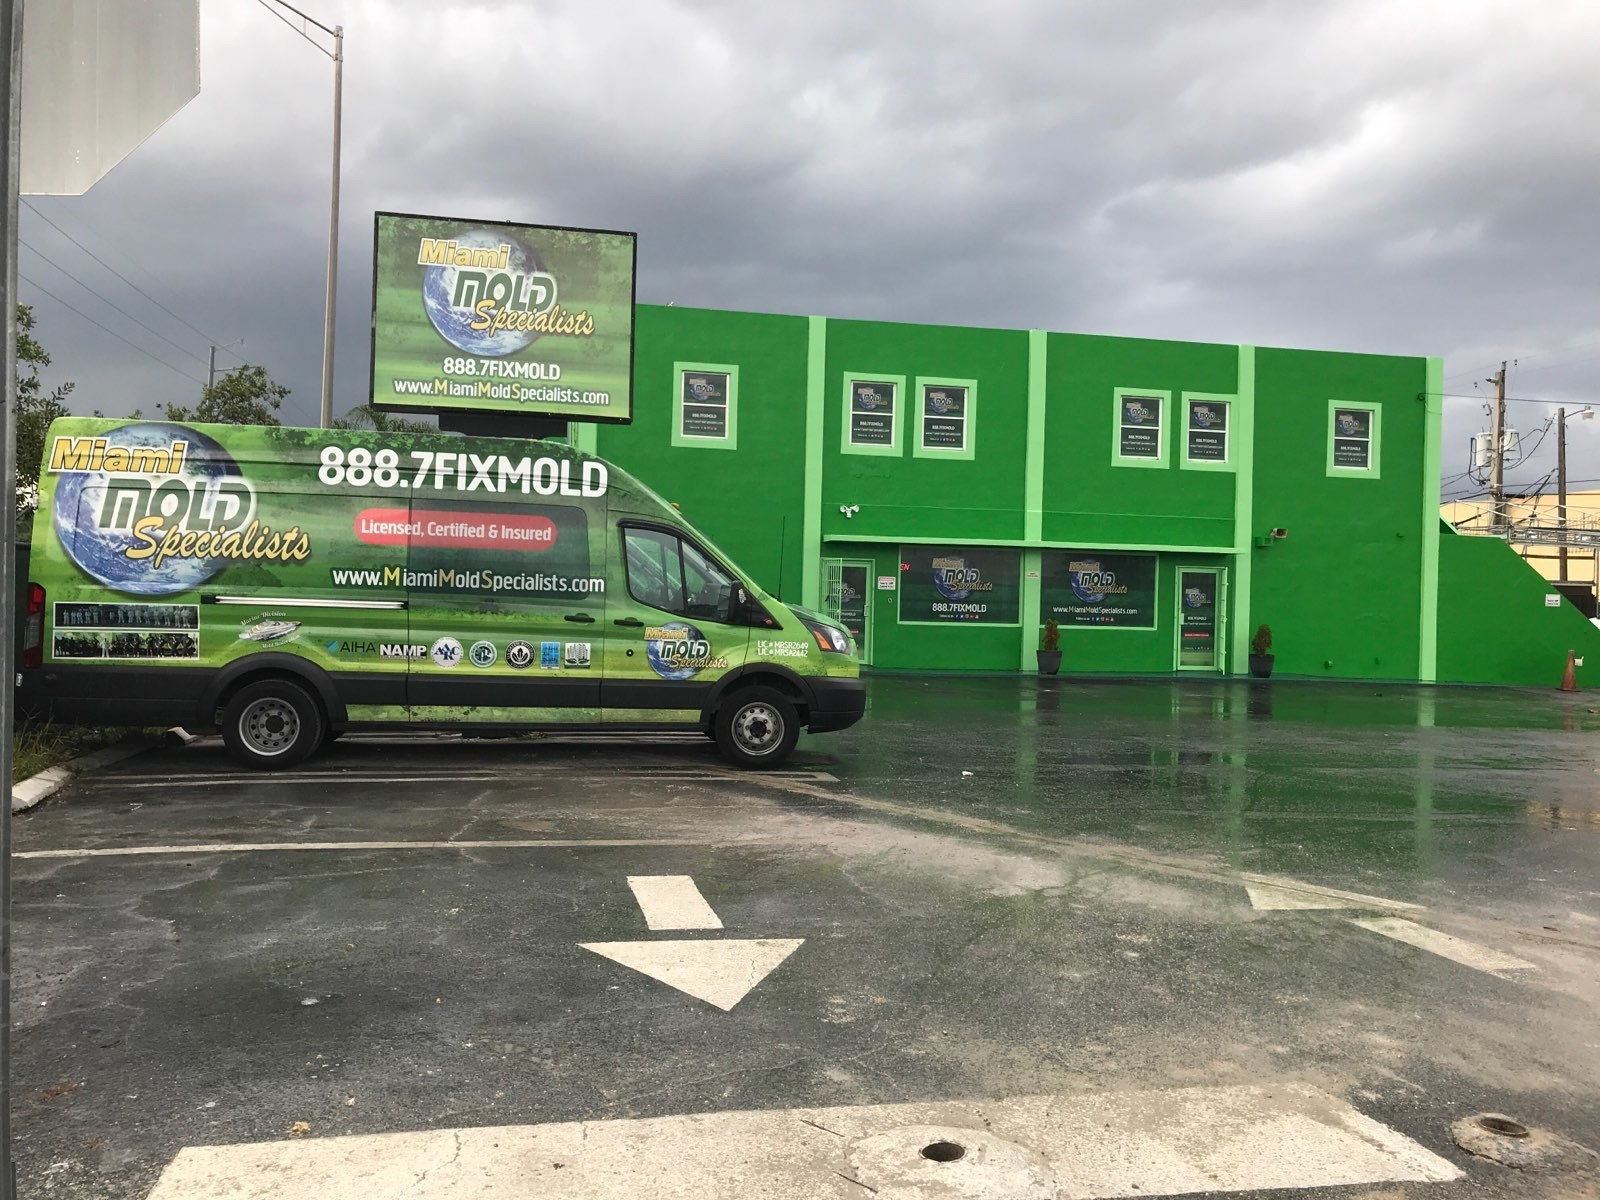 Miami Mold Specialist in Expansion Mode, Acquires New Building in South Beach